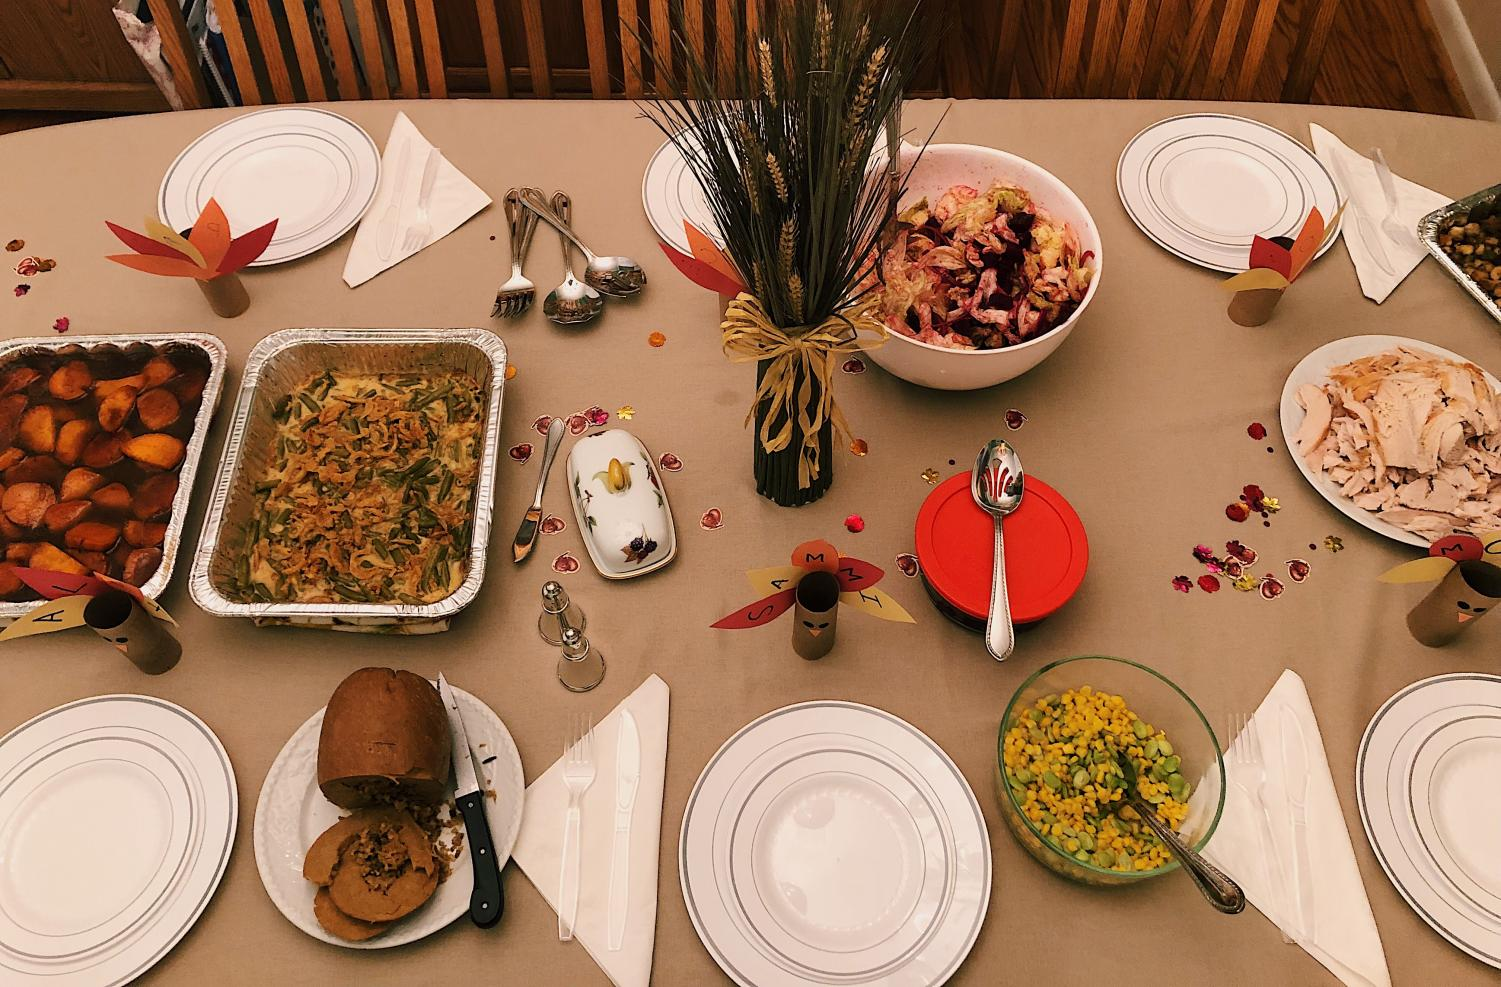 Leftovers from Thanksgiving? KC writer Sammi Stec has 5 unique ways for you to turn them into delicious meals!